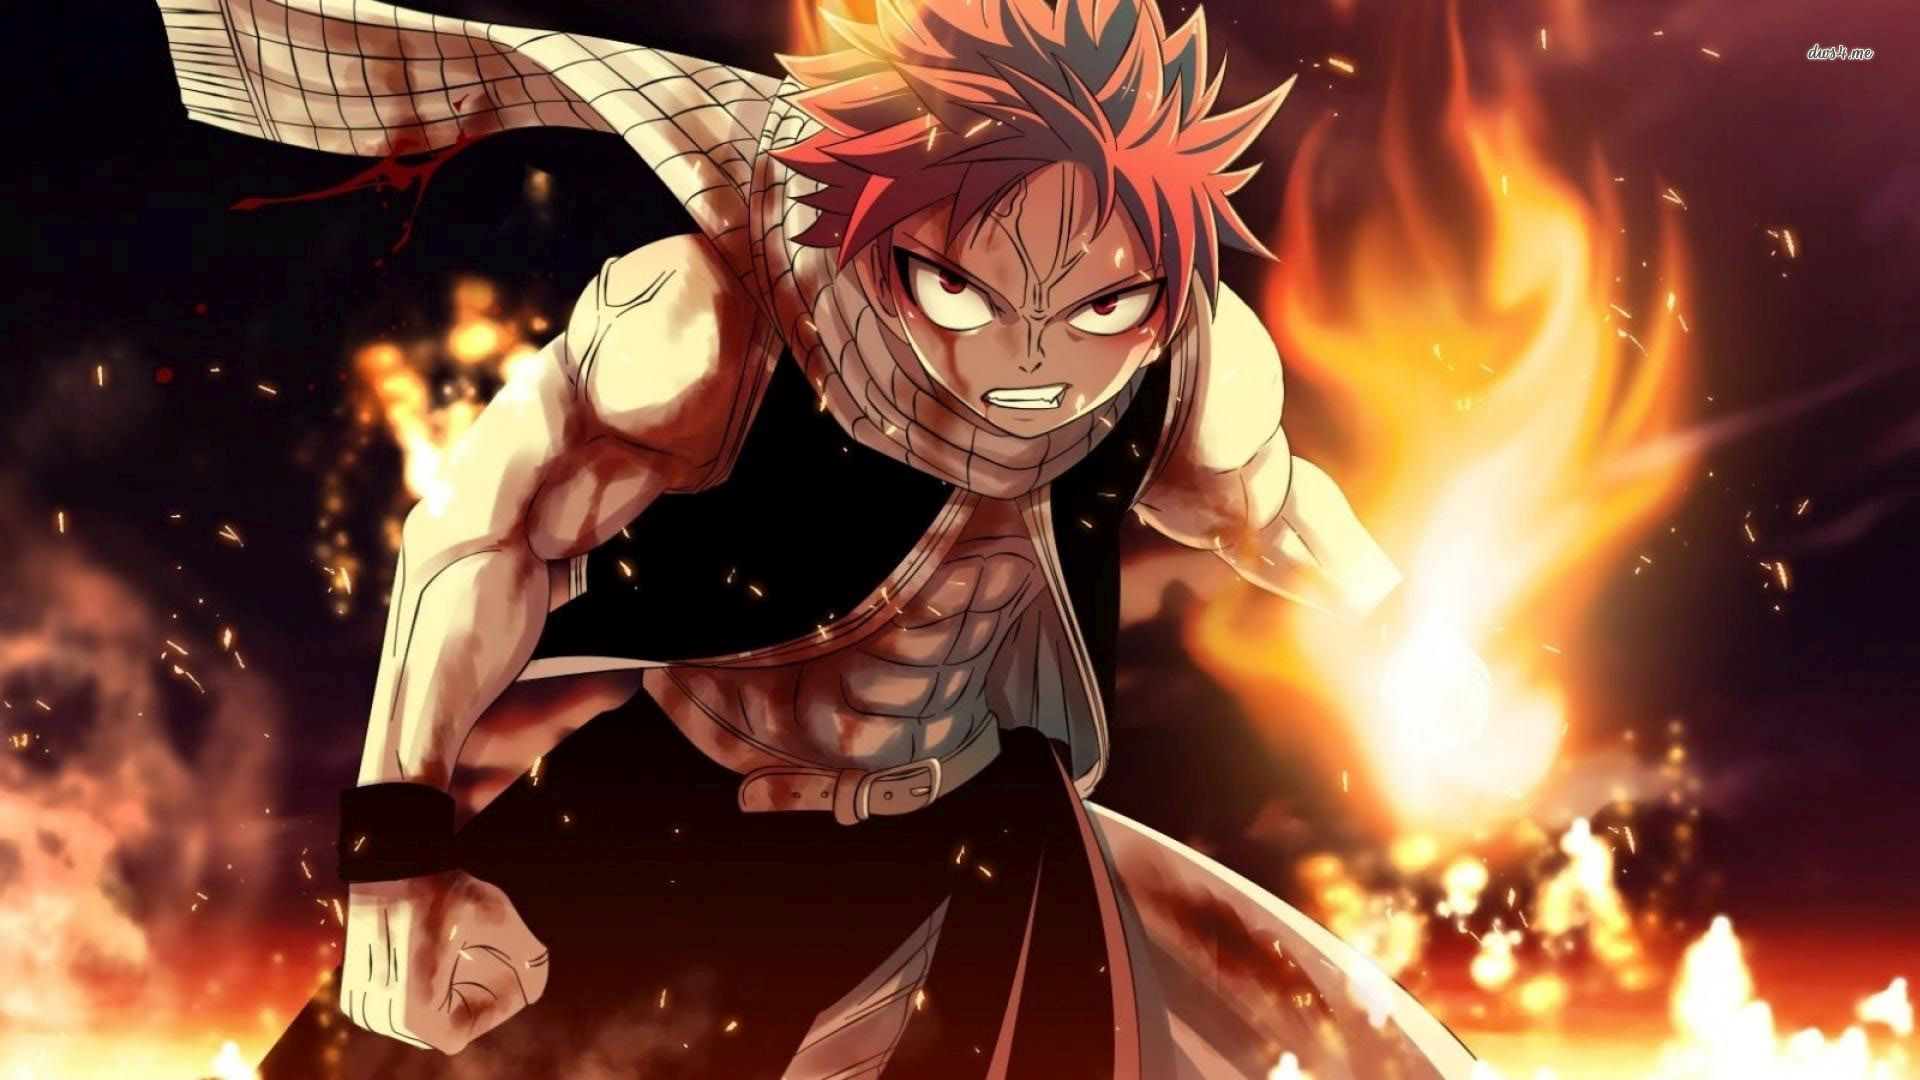 1920x1080 Collection of Fairy Tail Wallpapers on HDWallpapers Fairytail Anime Wallpapers  Wallpapers)